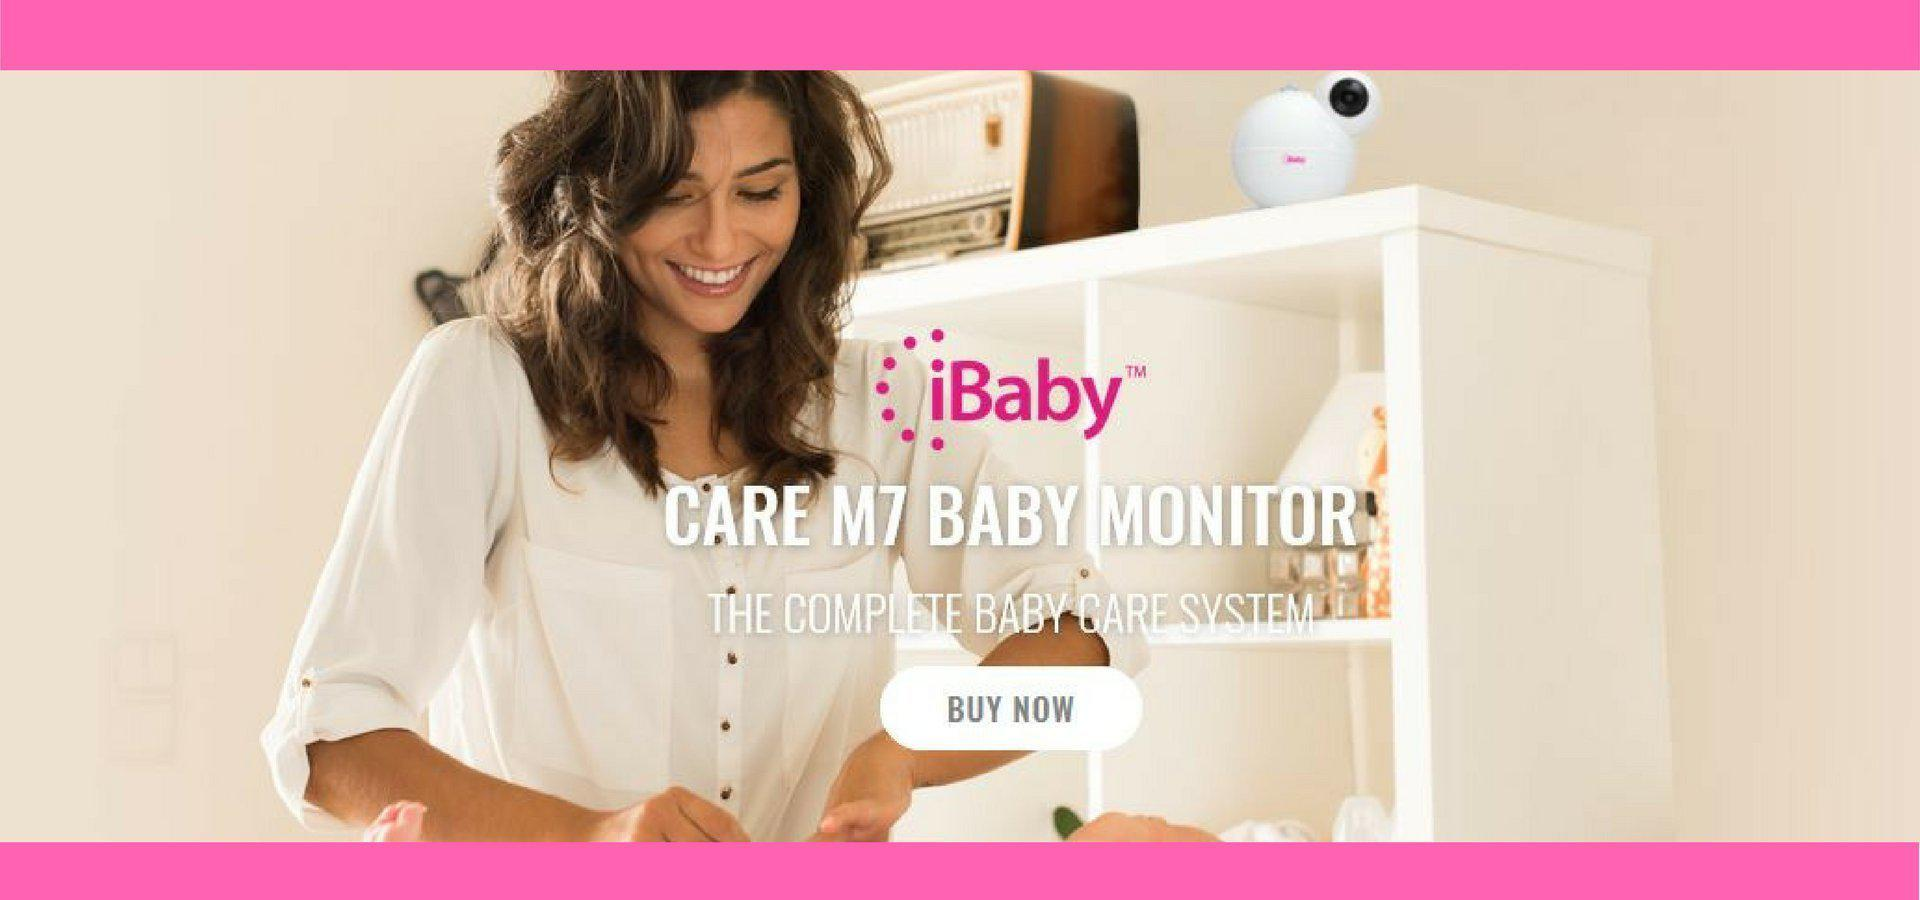 iBaby Smart Baby Monitors From Linelink Online